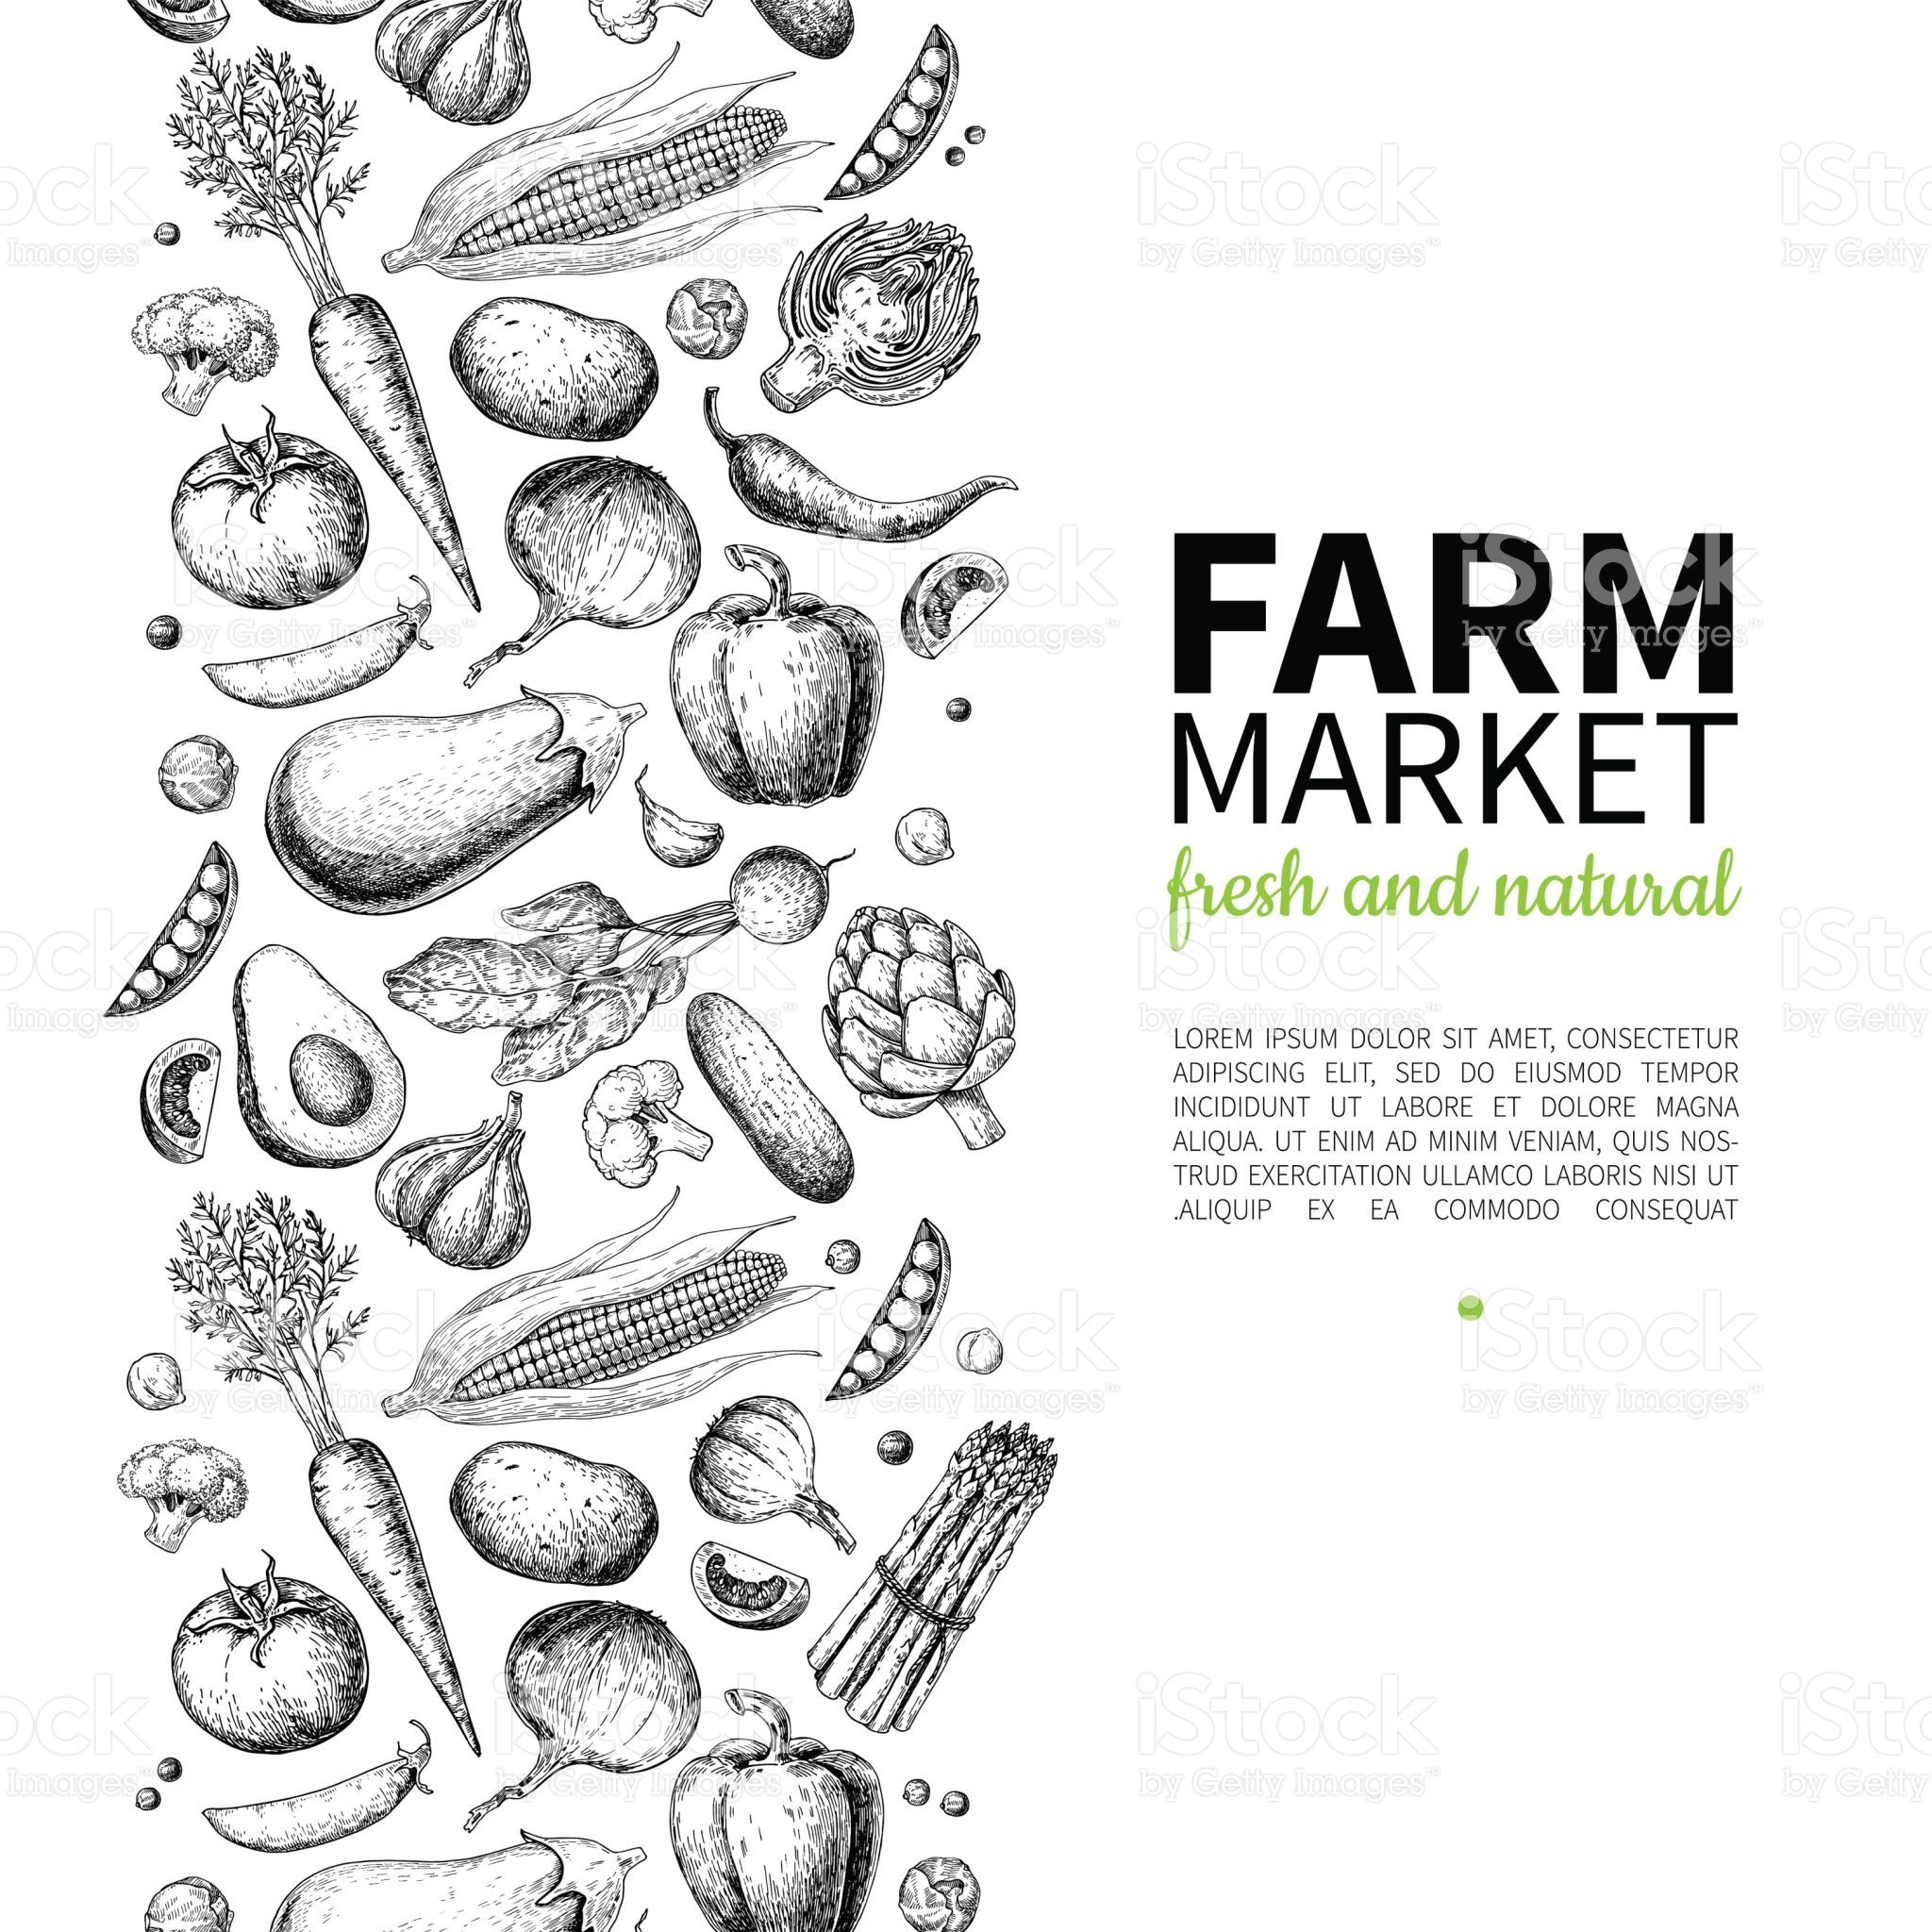 Vegetable Hand Drawn Vintage Vector Illustration Farm Market Poster How To Draw Hands Vector Illustration Farm Logo